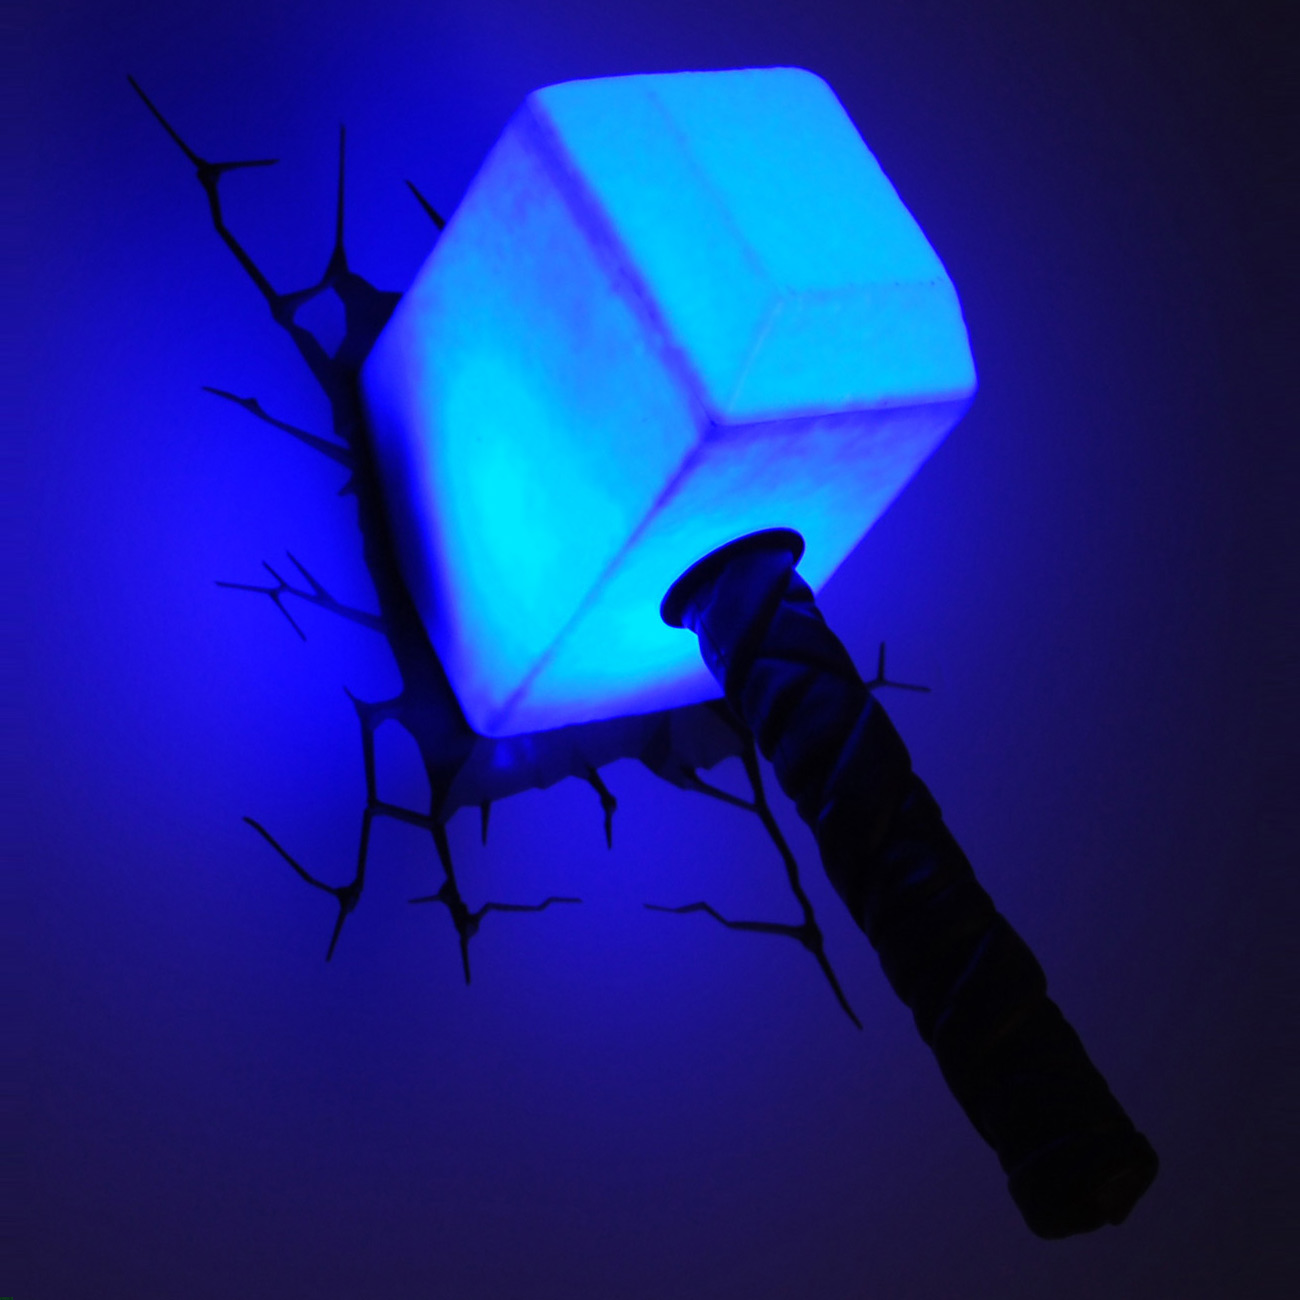 3d Wall Decor Lights : Dlightfx launches the new avengers thor hammer